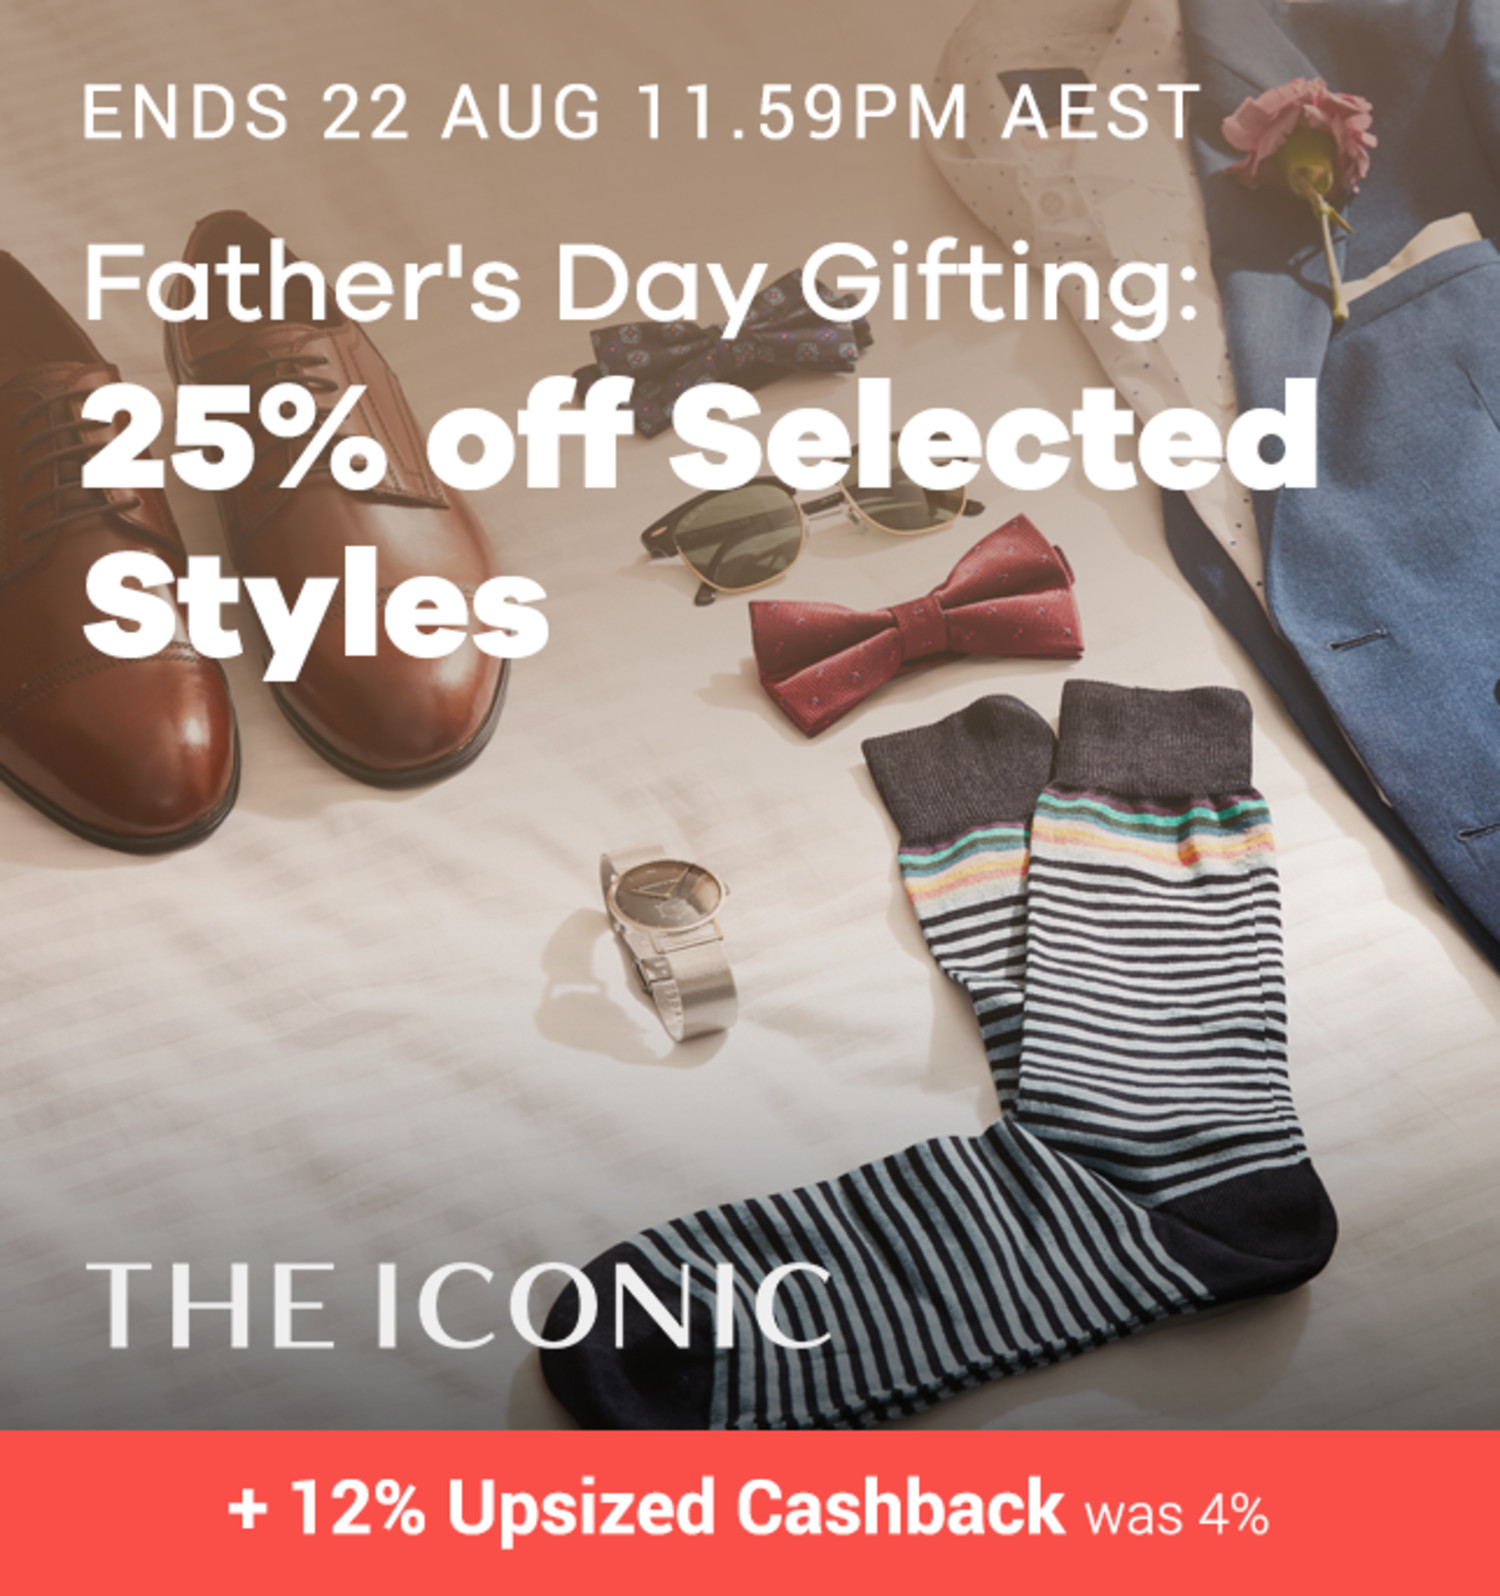 THE ICONIC - 25% off Selected Styles for Father's Day